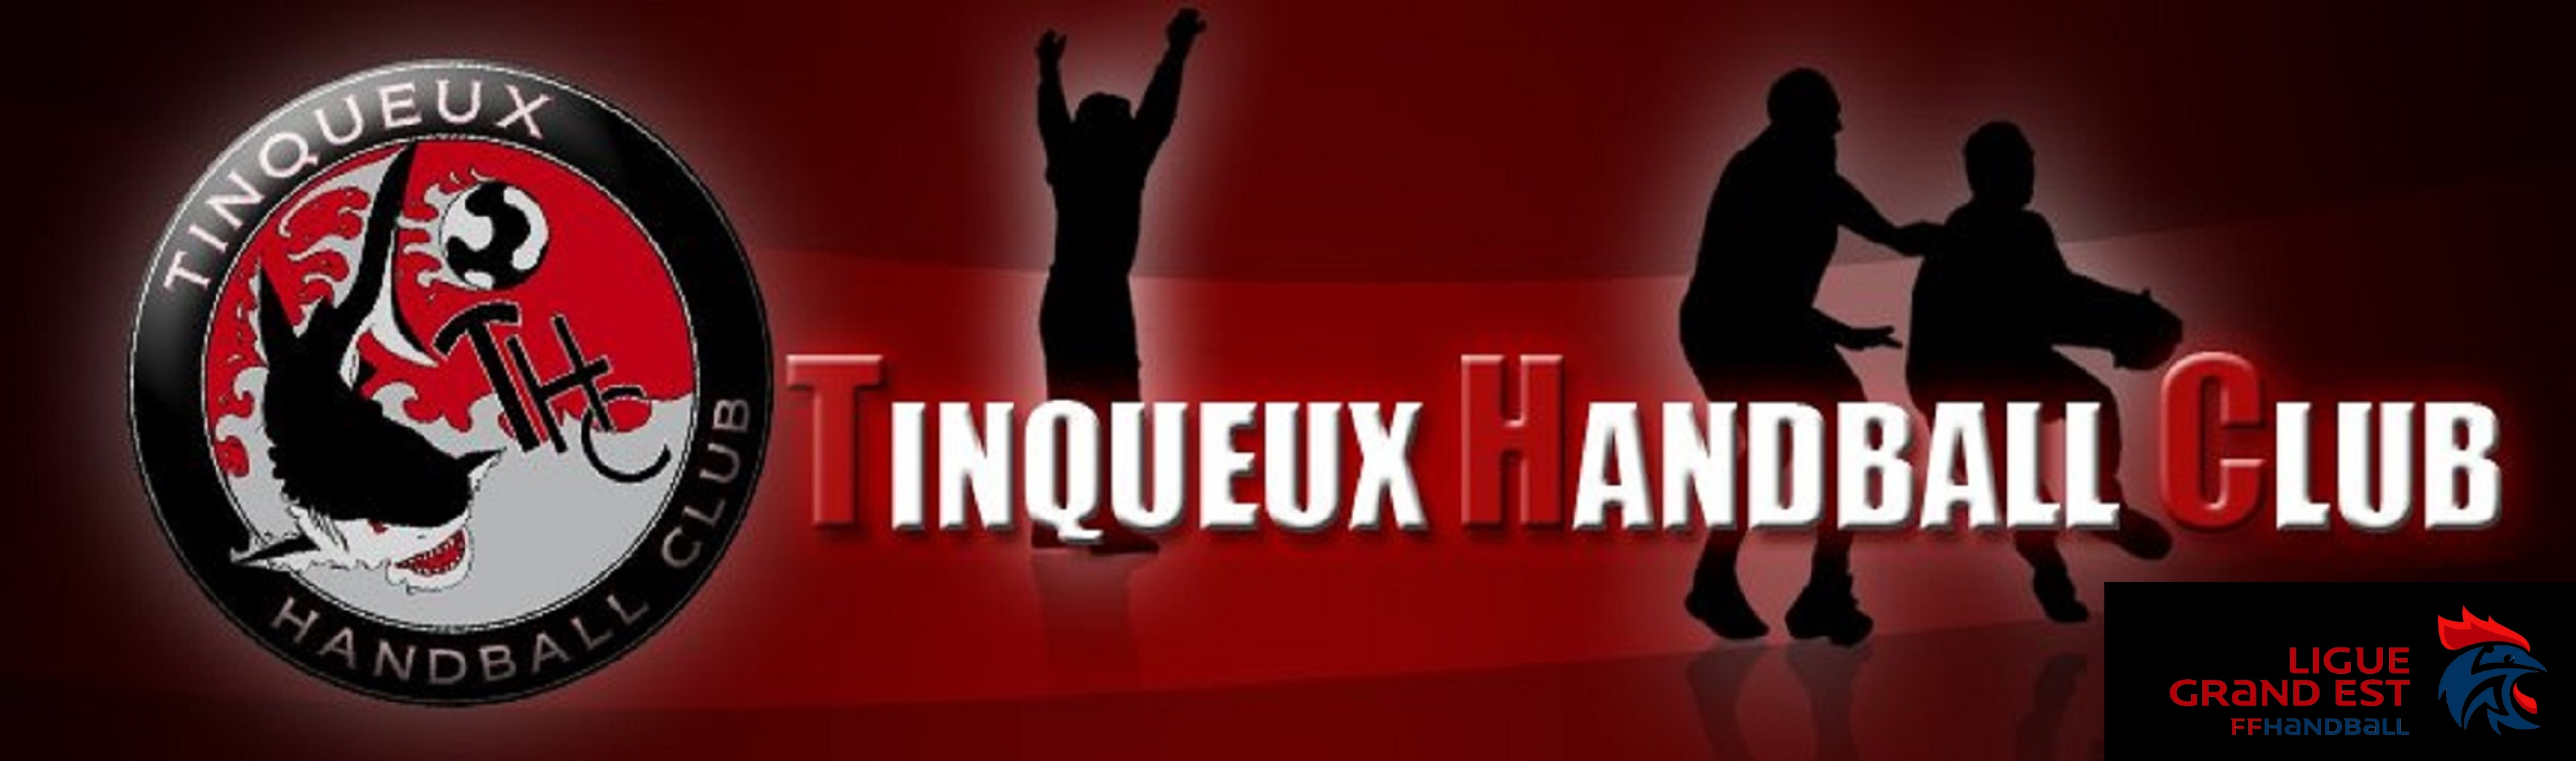 Tinqueux handball club